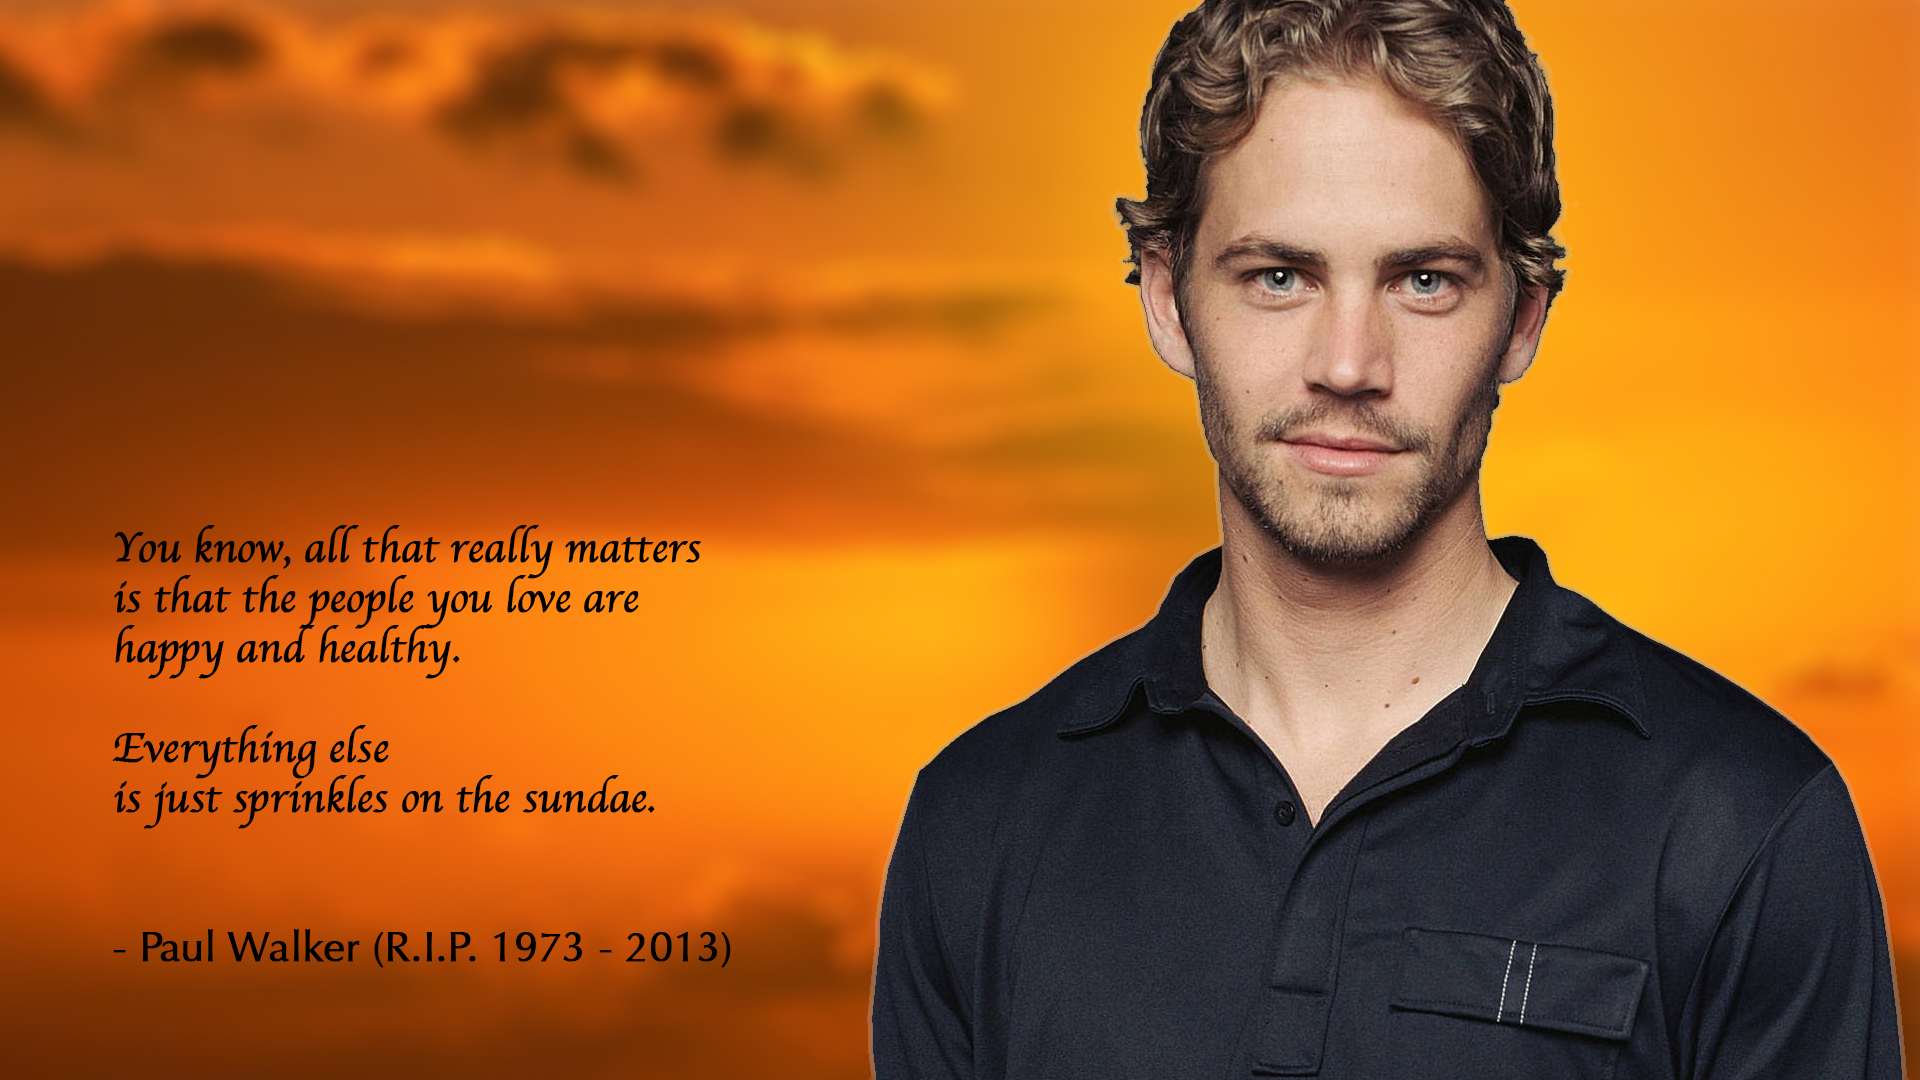 RIP Paul Walker by IsimudtheMessenger RIP Paul Walker by IsimudtheMessenger